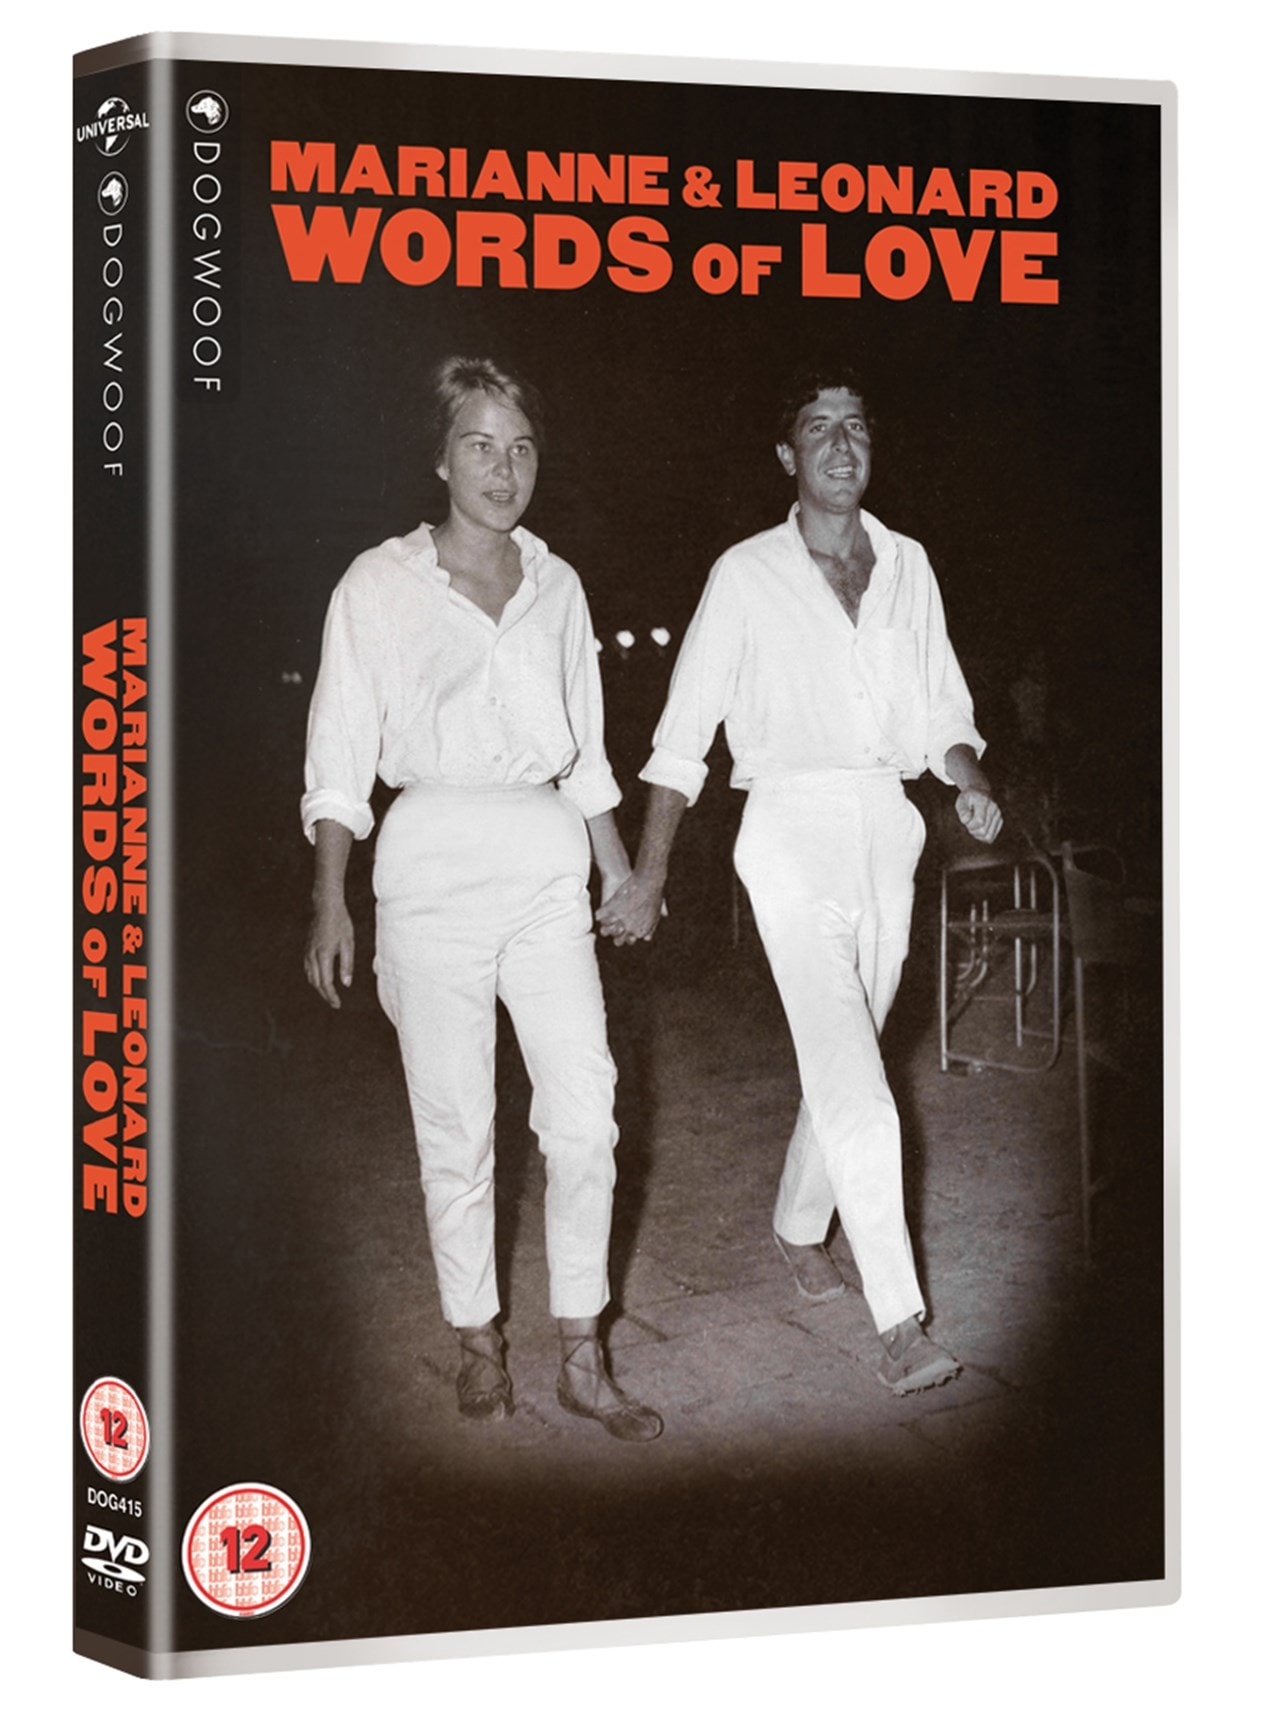 Marianne  Leonard Words of Love - Leonard Cohen - Film - DOGWOOF - 5050968003228 - October 14, 2019